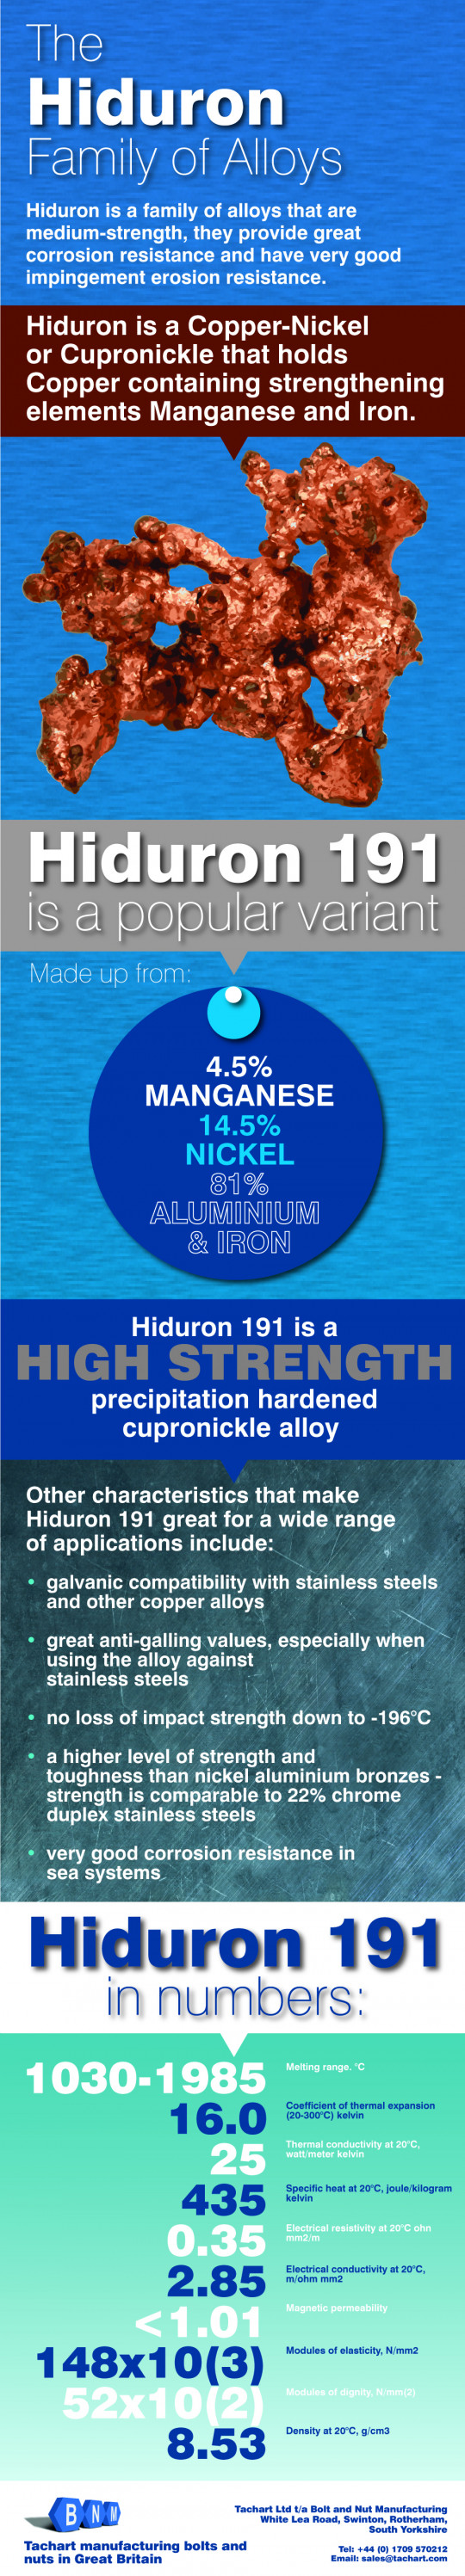 The Hiduron Family of Alloys